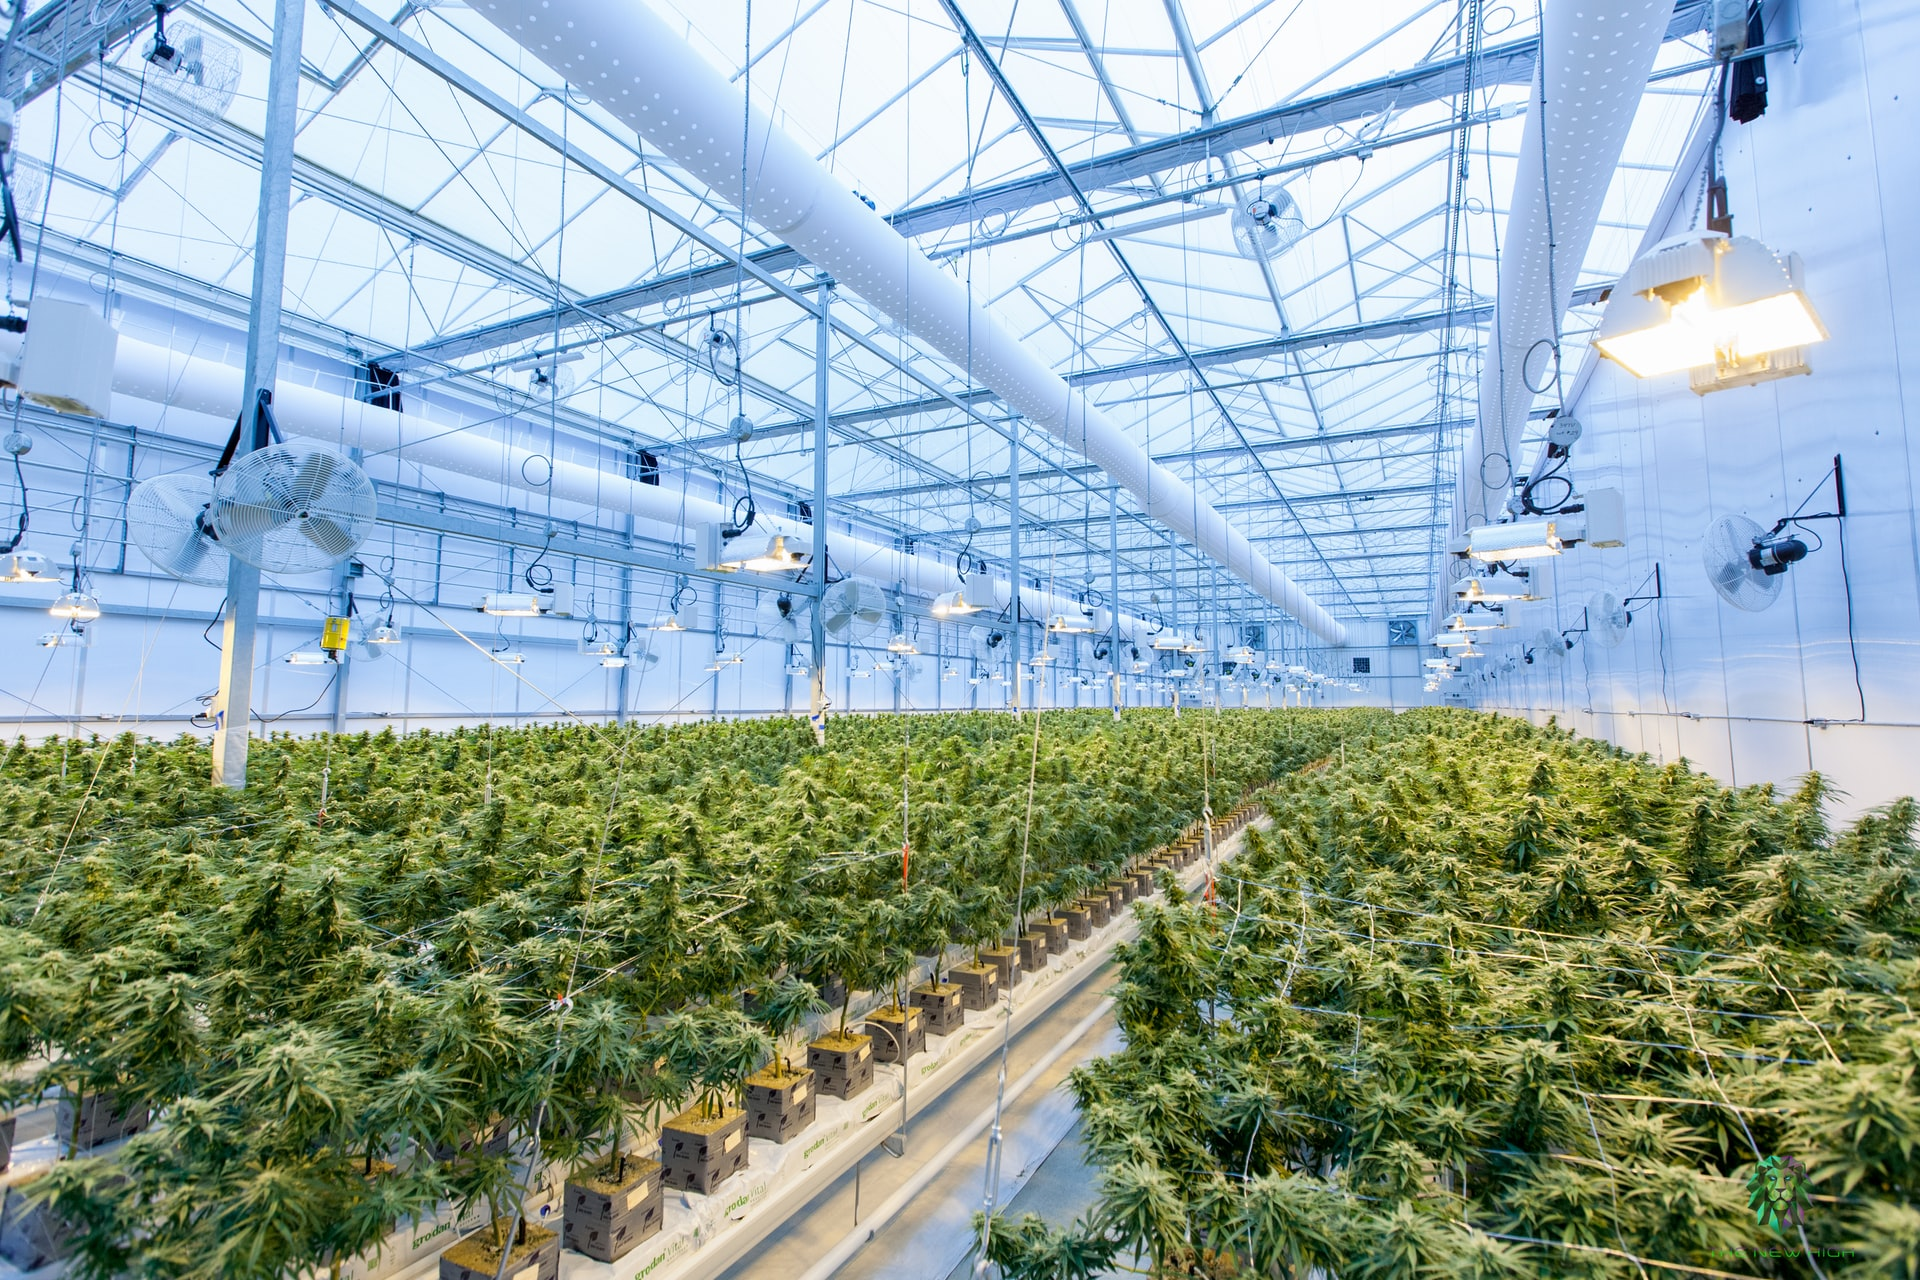 What Penalties Can Cannabis Businesses Face for Improper Waste Management in California?